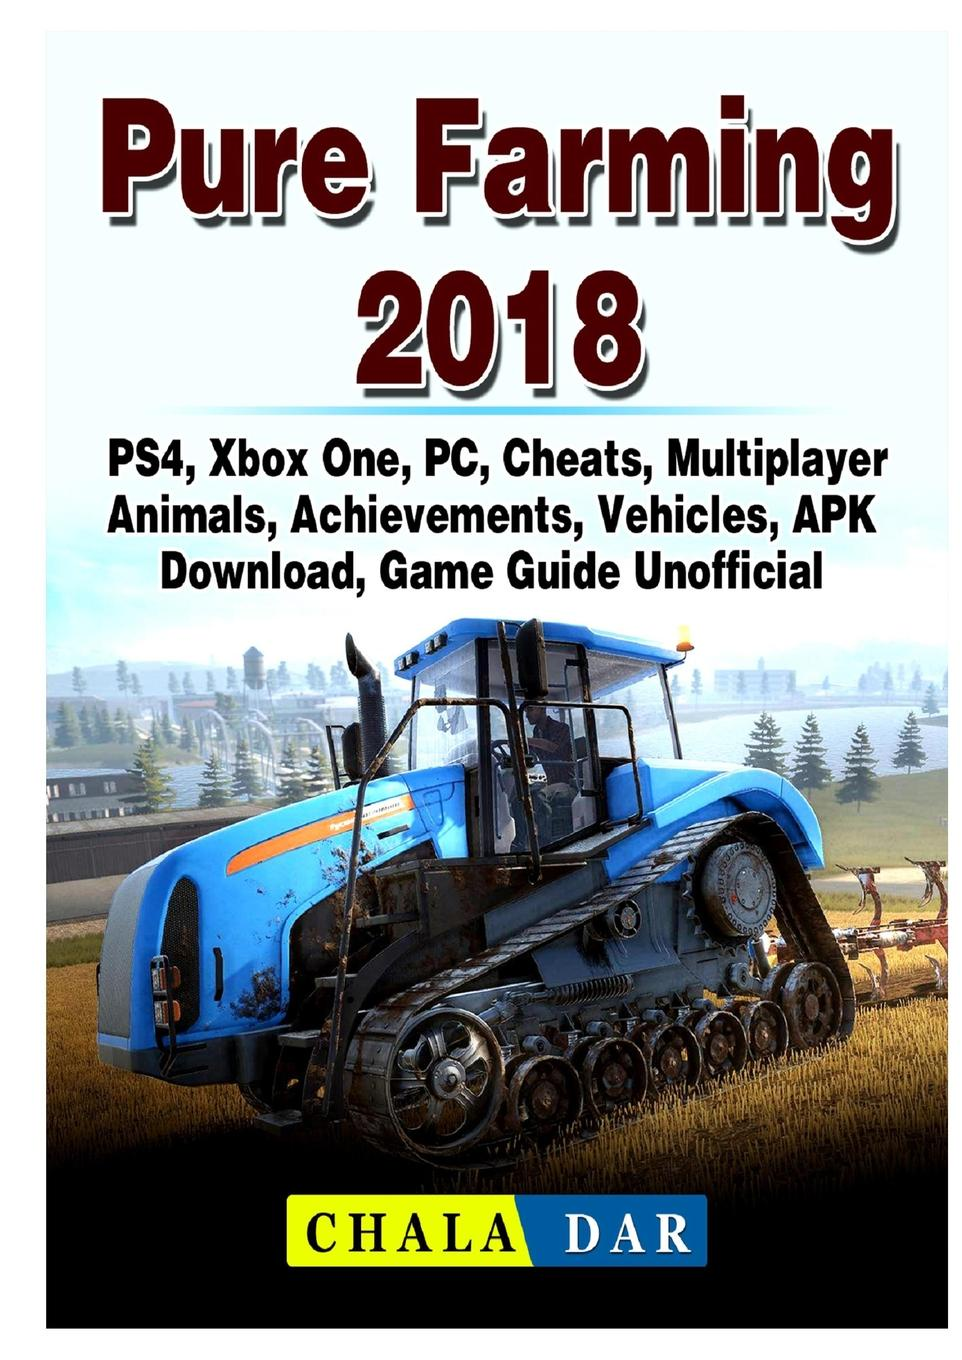 Chala Dar Pure Farming 2018, PS4, Xbox One, PC, Cheats, Multiplayer, Animals, Achievements, Vehicles, APK, Download, Game Guide Unofficial jim hornickel negotiating success tips and tools for building rapport and dissolving conflict while still getting what you want